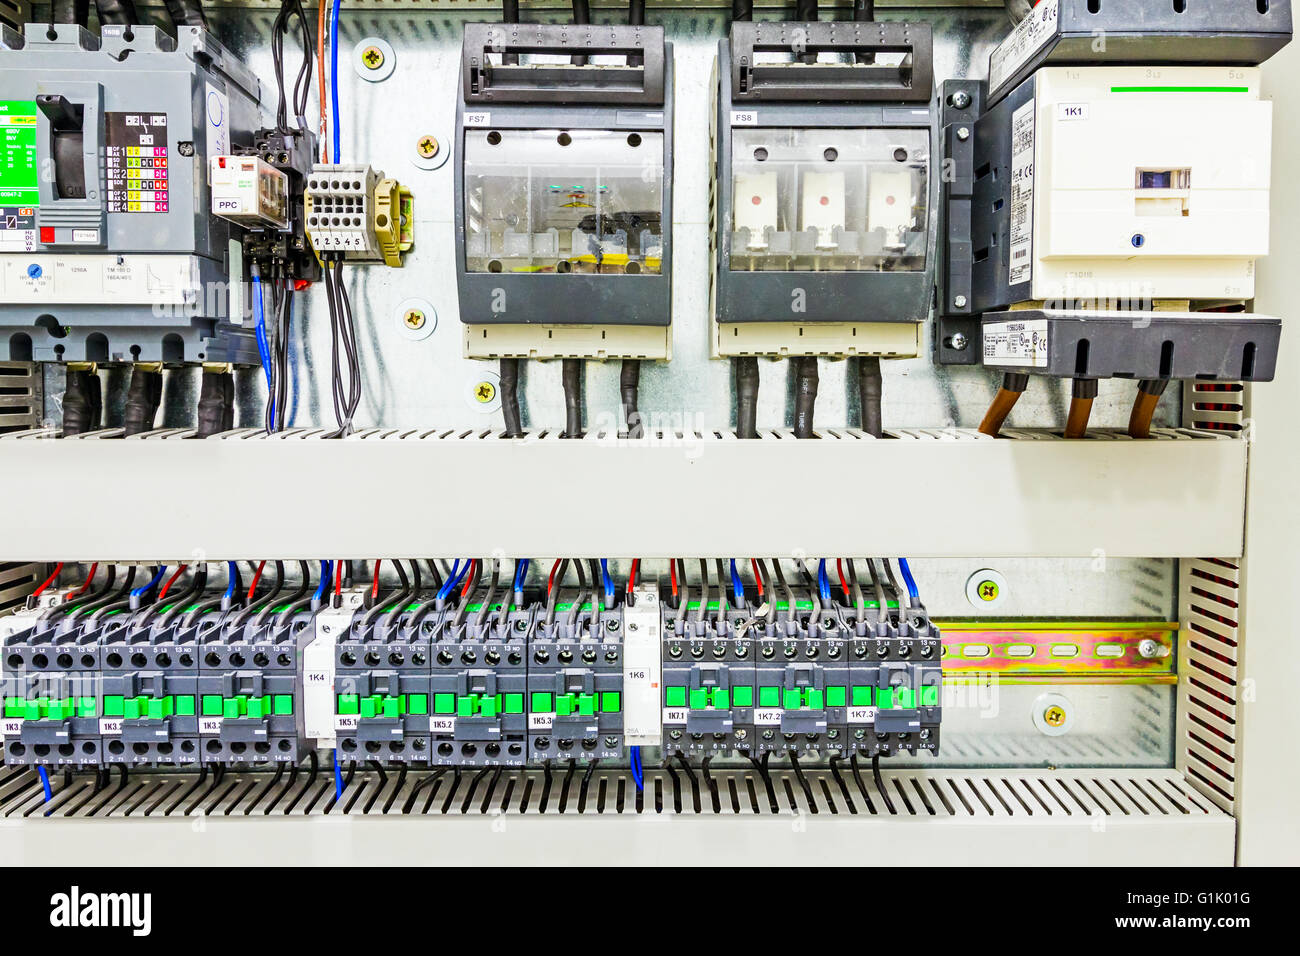 Electrical Relay Switch Stock Photos Power Automatic Programming Has Control Over Panel Lines Located Inside Of The